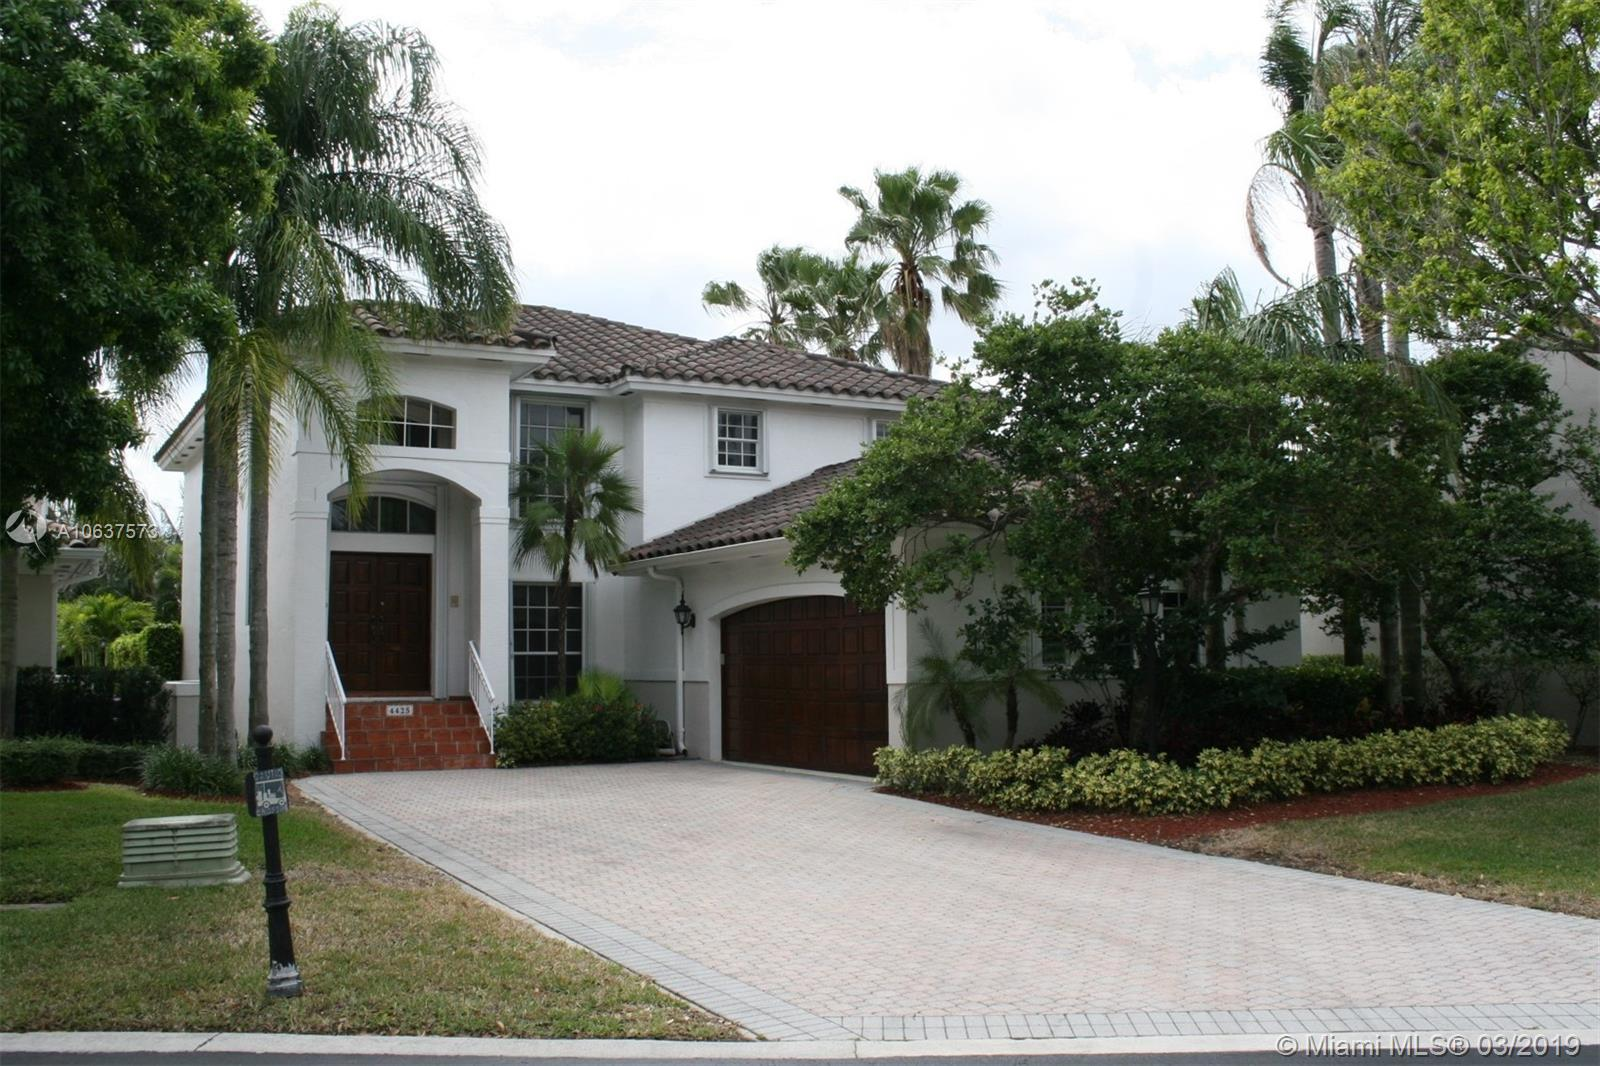 4425 NW 93rd Doral Ct, Doral, Florida